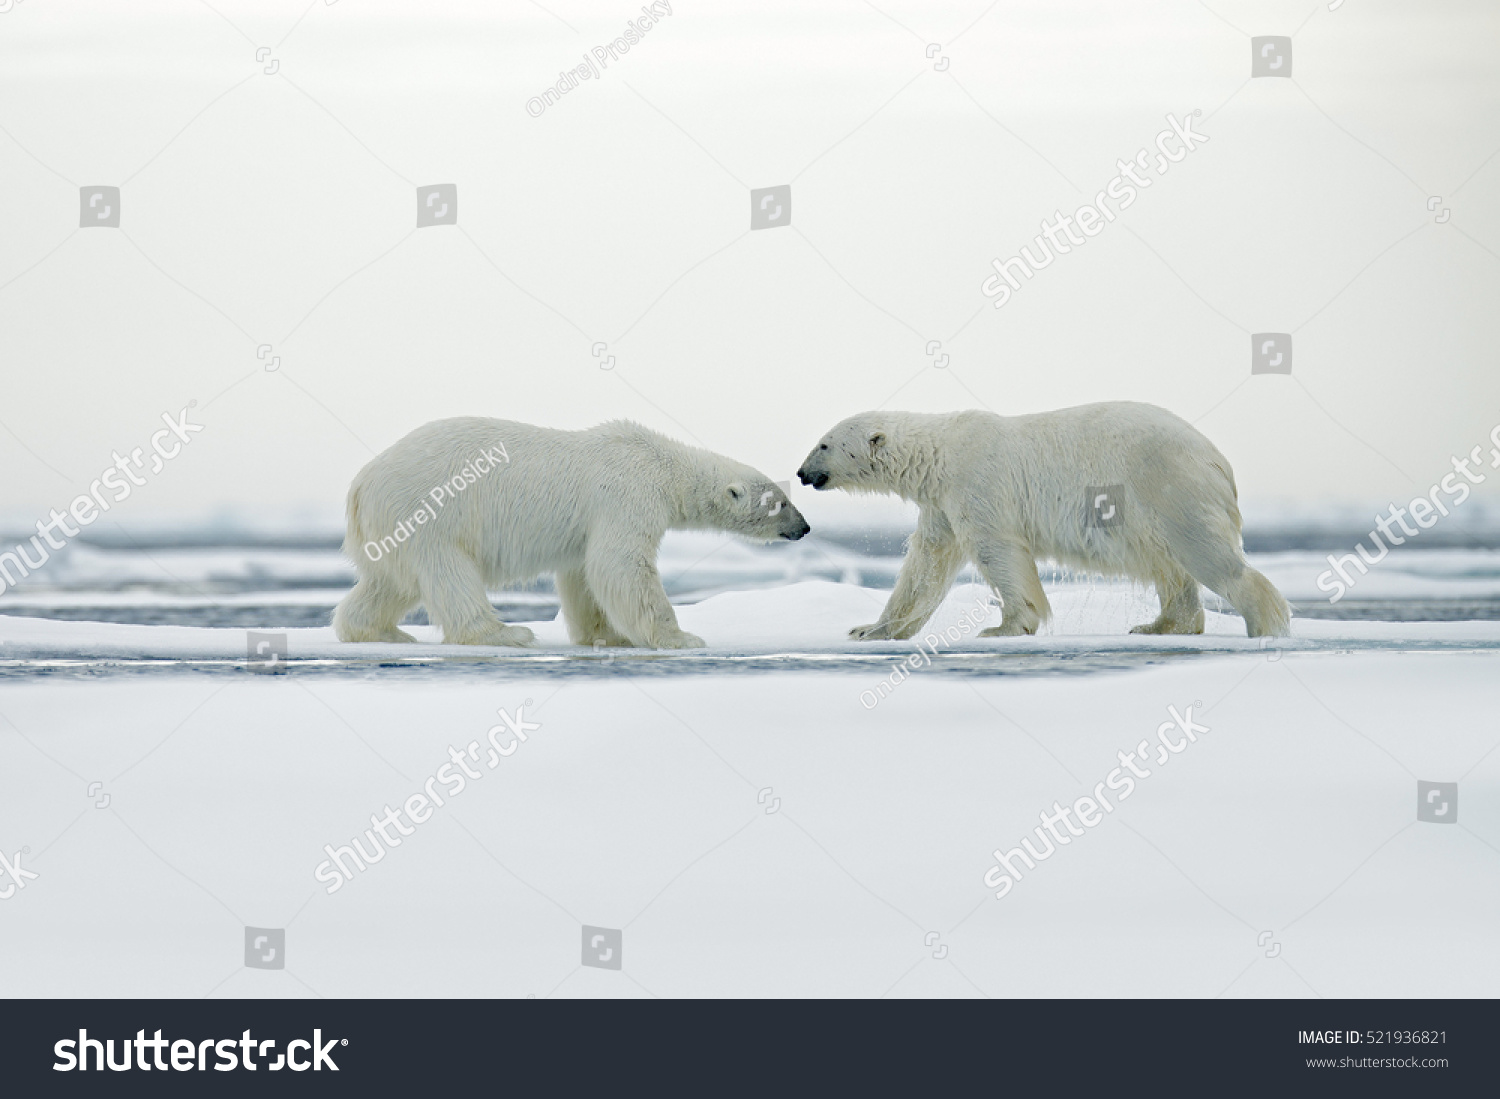 polar bear couple - photo #34